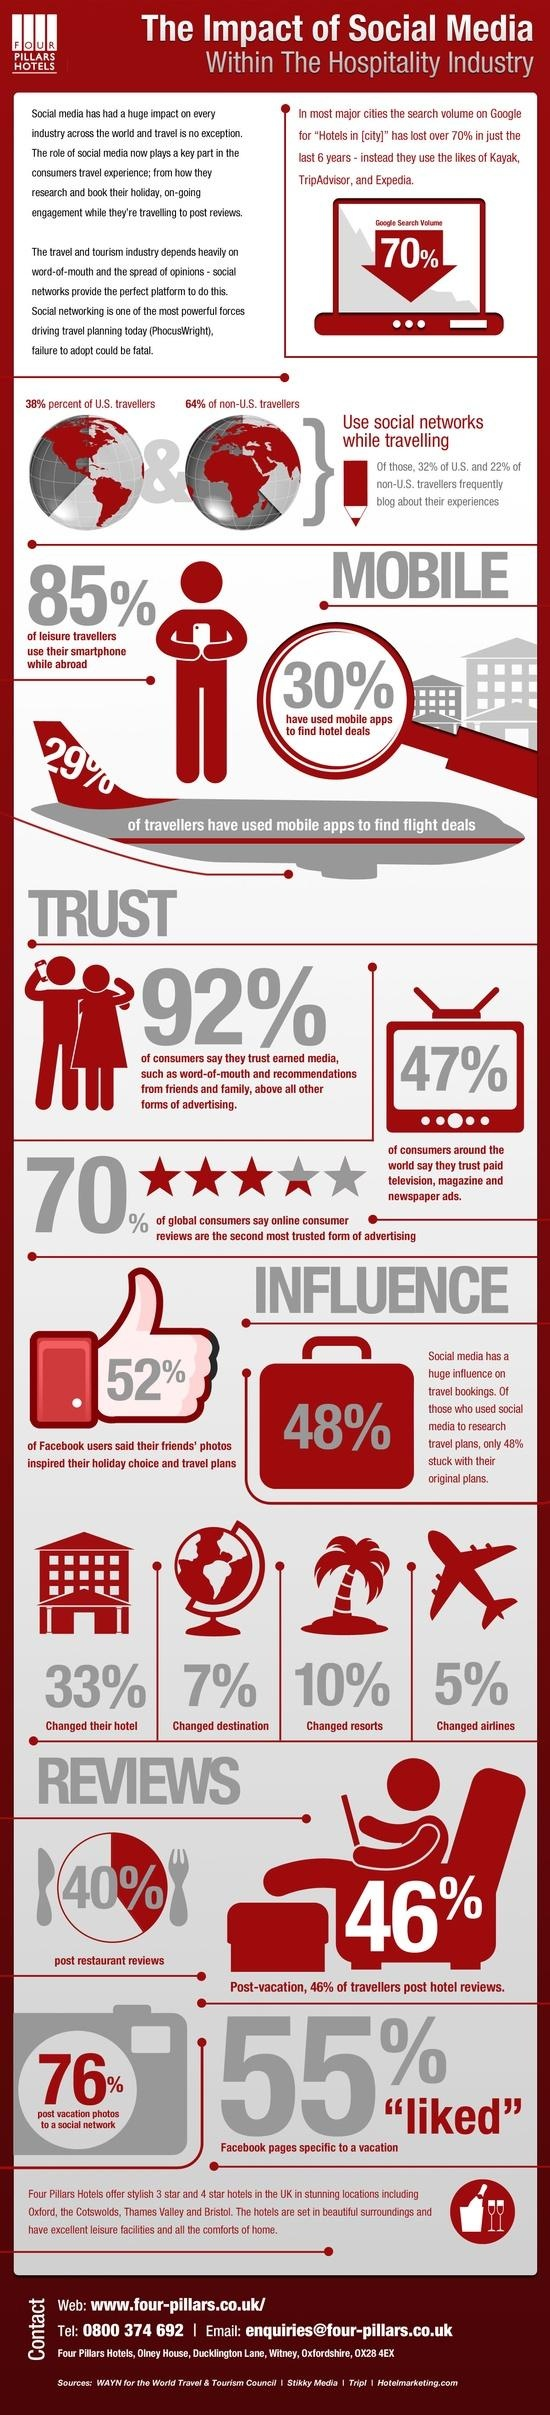 The Impact Of Social Media On Travel And Tourism [INFOGRAPHIC]